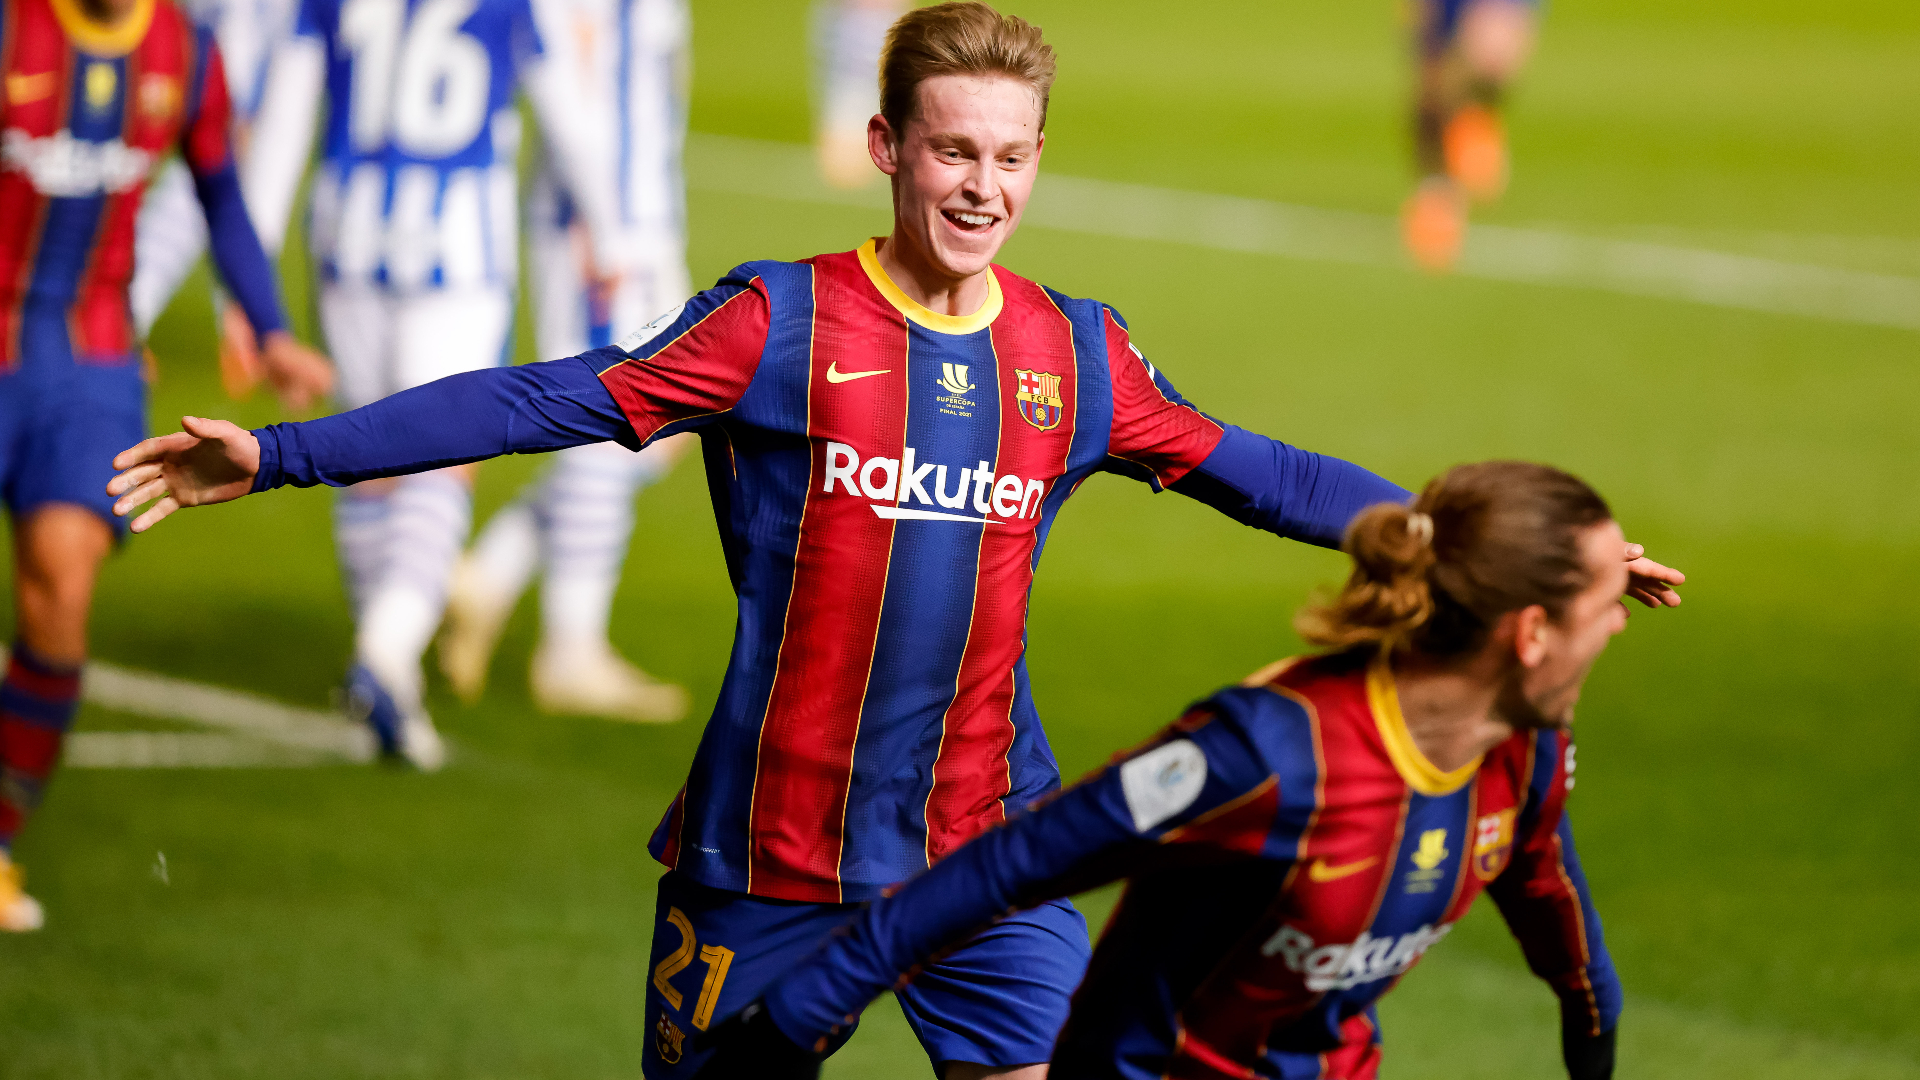 Real Sociedad 1-1 Barcelona (aet, 2-3 pens): Ter Stegen the hero as Catalans reach Supercopa final